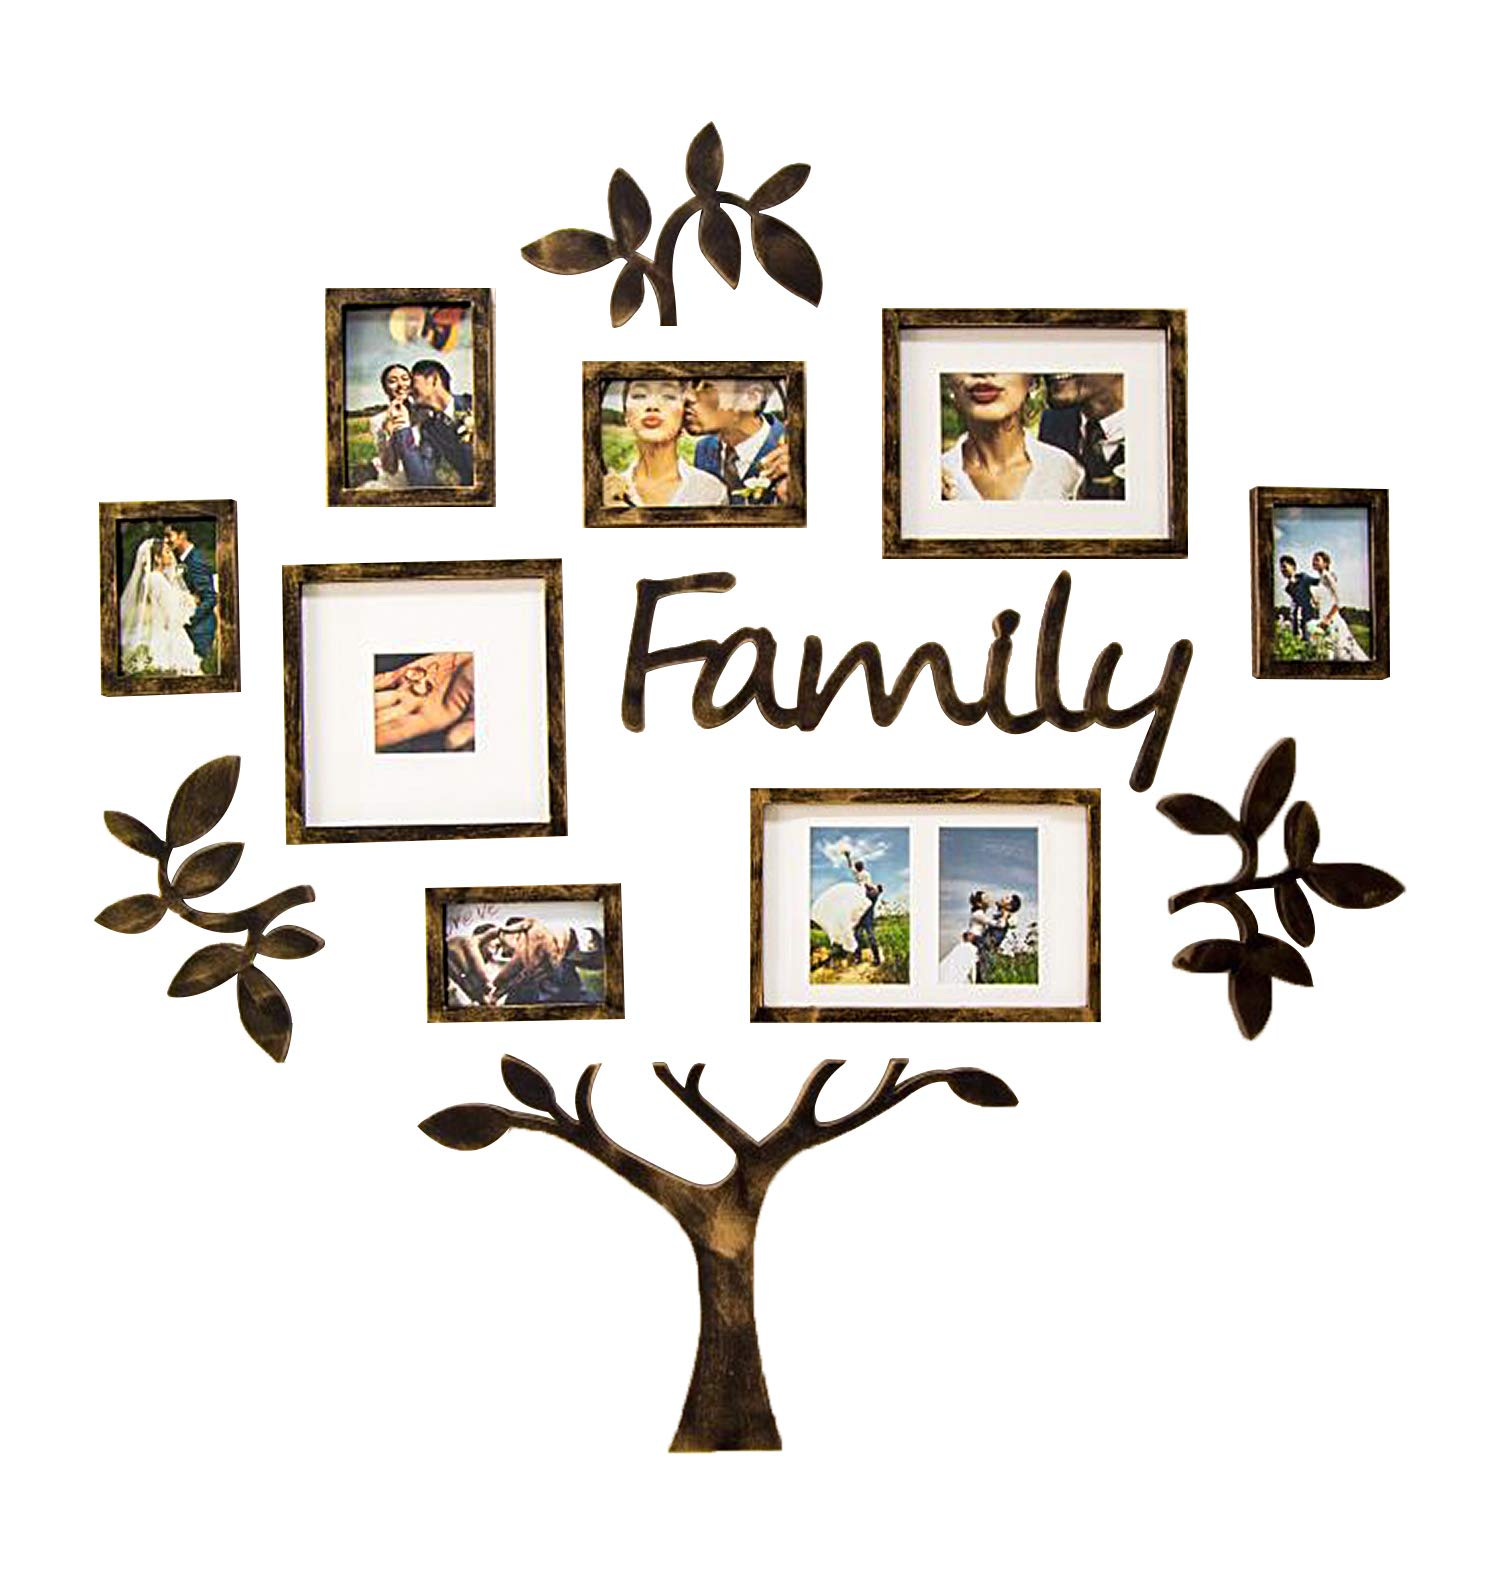 Jerry & Maggie - Photo Frame | Plaque College Frame - Wall Decoration Combination - Brown PVC Picture Frame Selfie Gallery Collage with Hanging Template & Wall Mounting Design | Family Tree by Jerry & Maggie